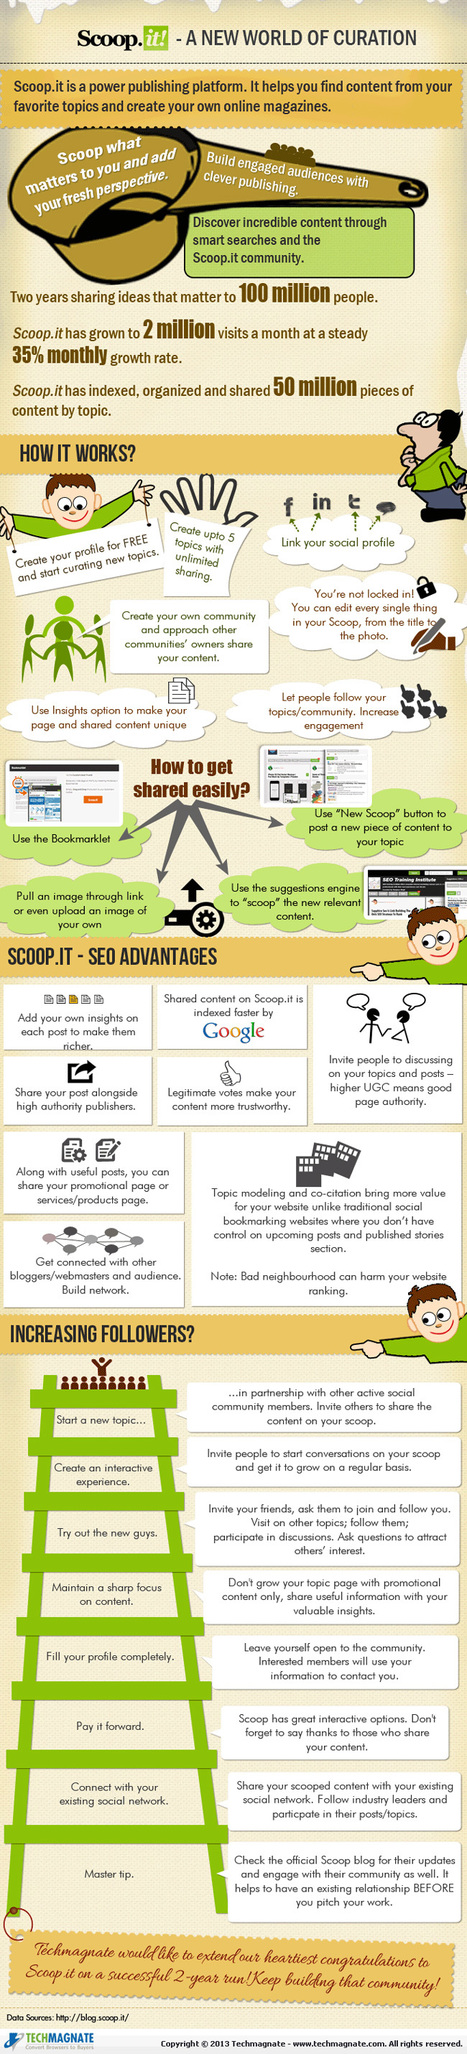 Scoop.It for SEO – A New World of Curation [Infographic] | Technologies numériques & Education | Scoop.it